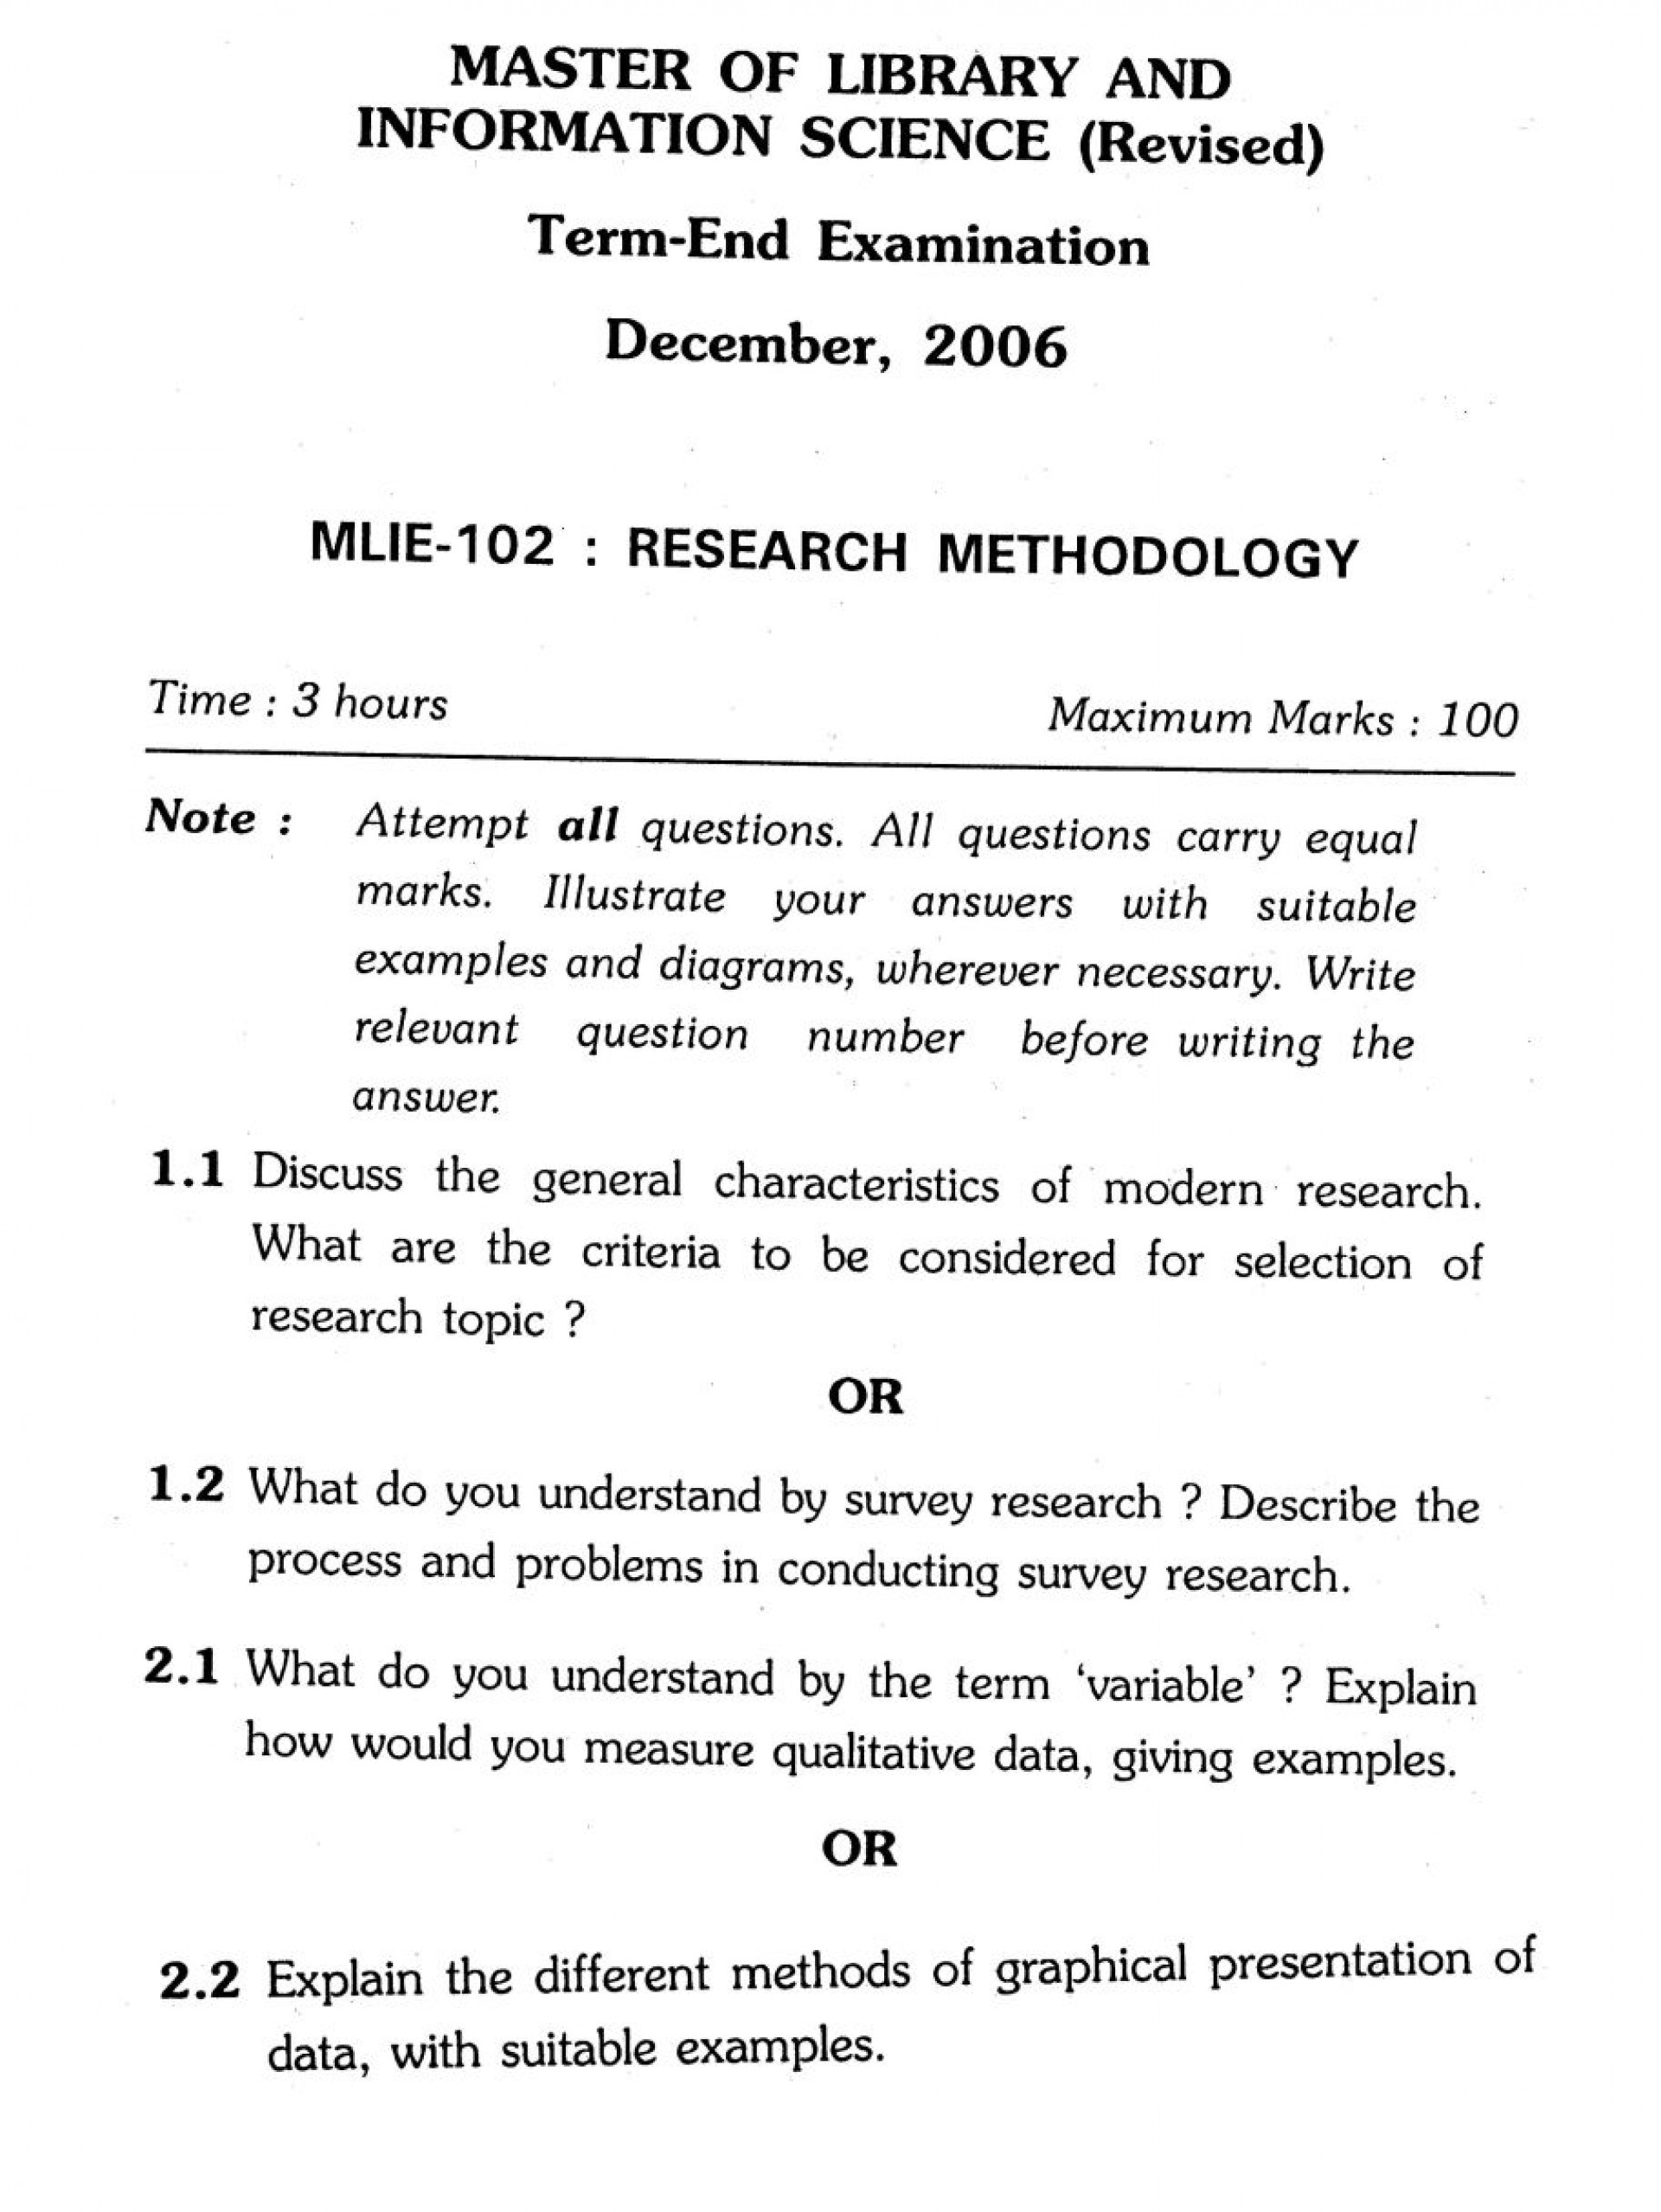 012 Research Paper Methodology Ignou Master Of Library And Information Science Previous Years Question Papers Awful On Teaching Pdf Types Example 1920